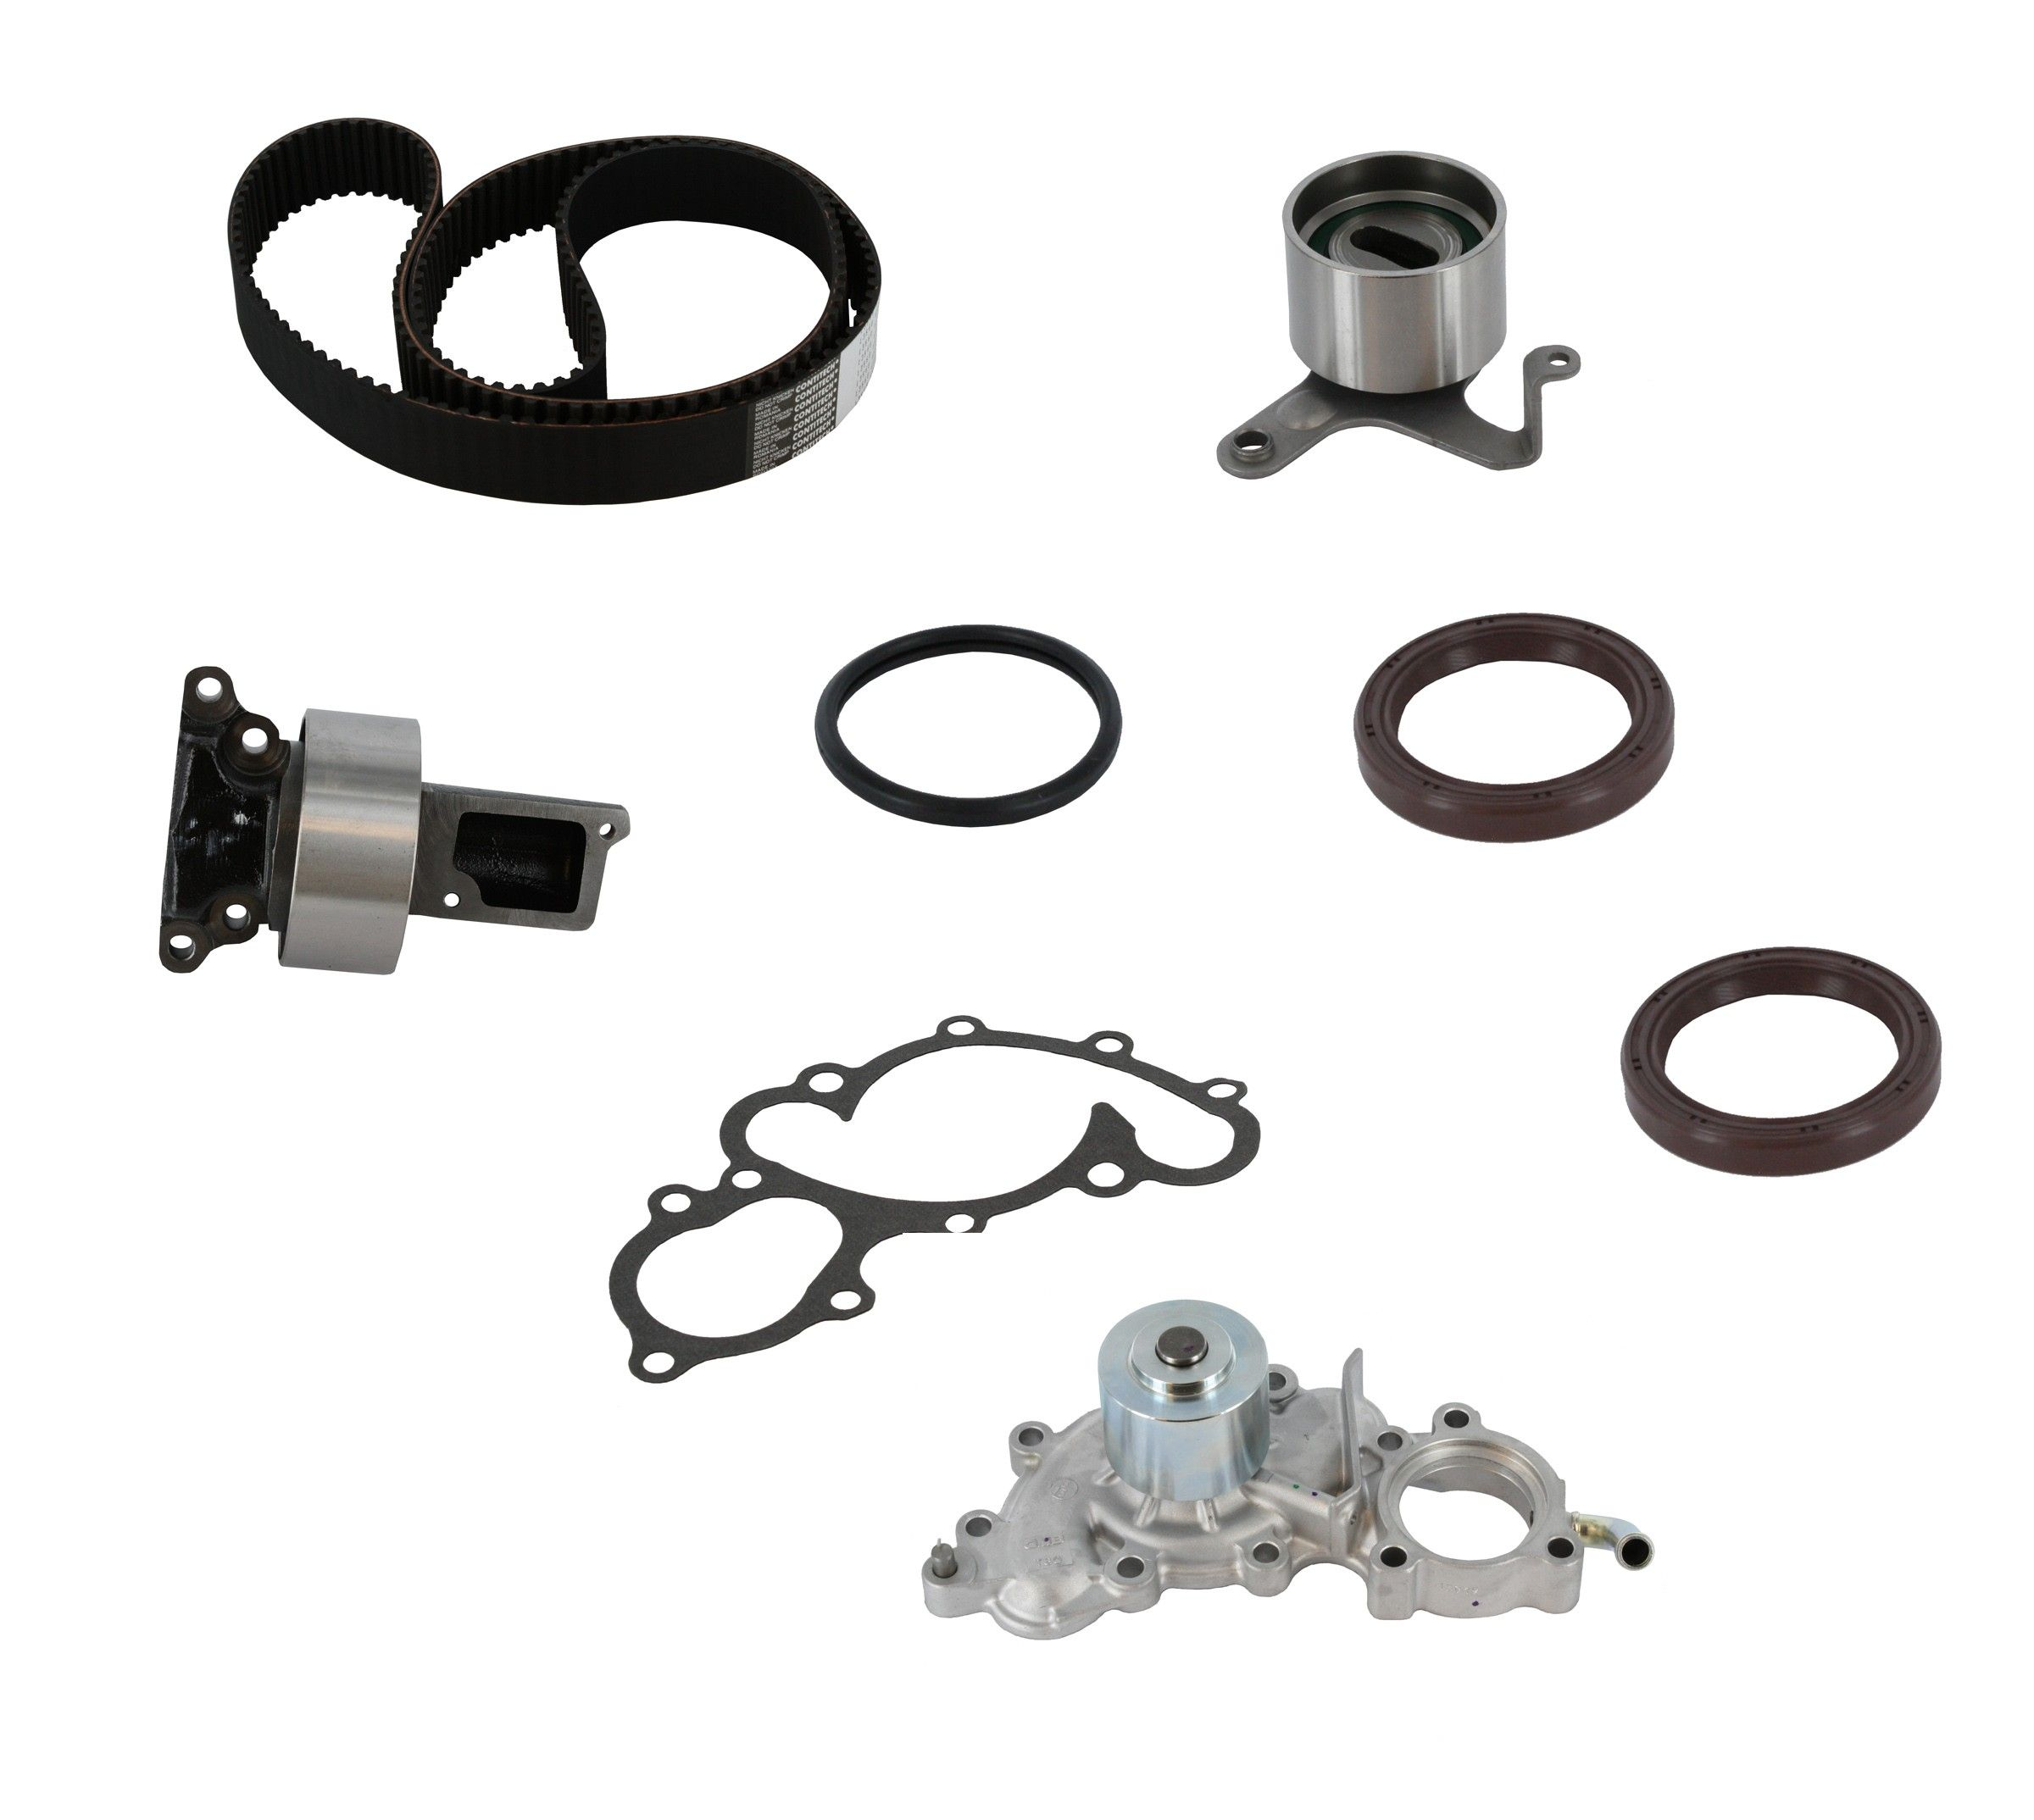 Toyota 4runner Engine Timing Belt Kit With Water Pump Replacement 1992 6 Cyl 30l Crp Pp154lk1 Pro Series Plus Contitech W Bypass Tube